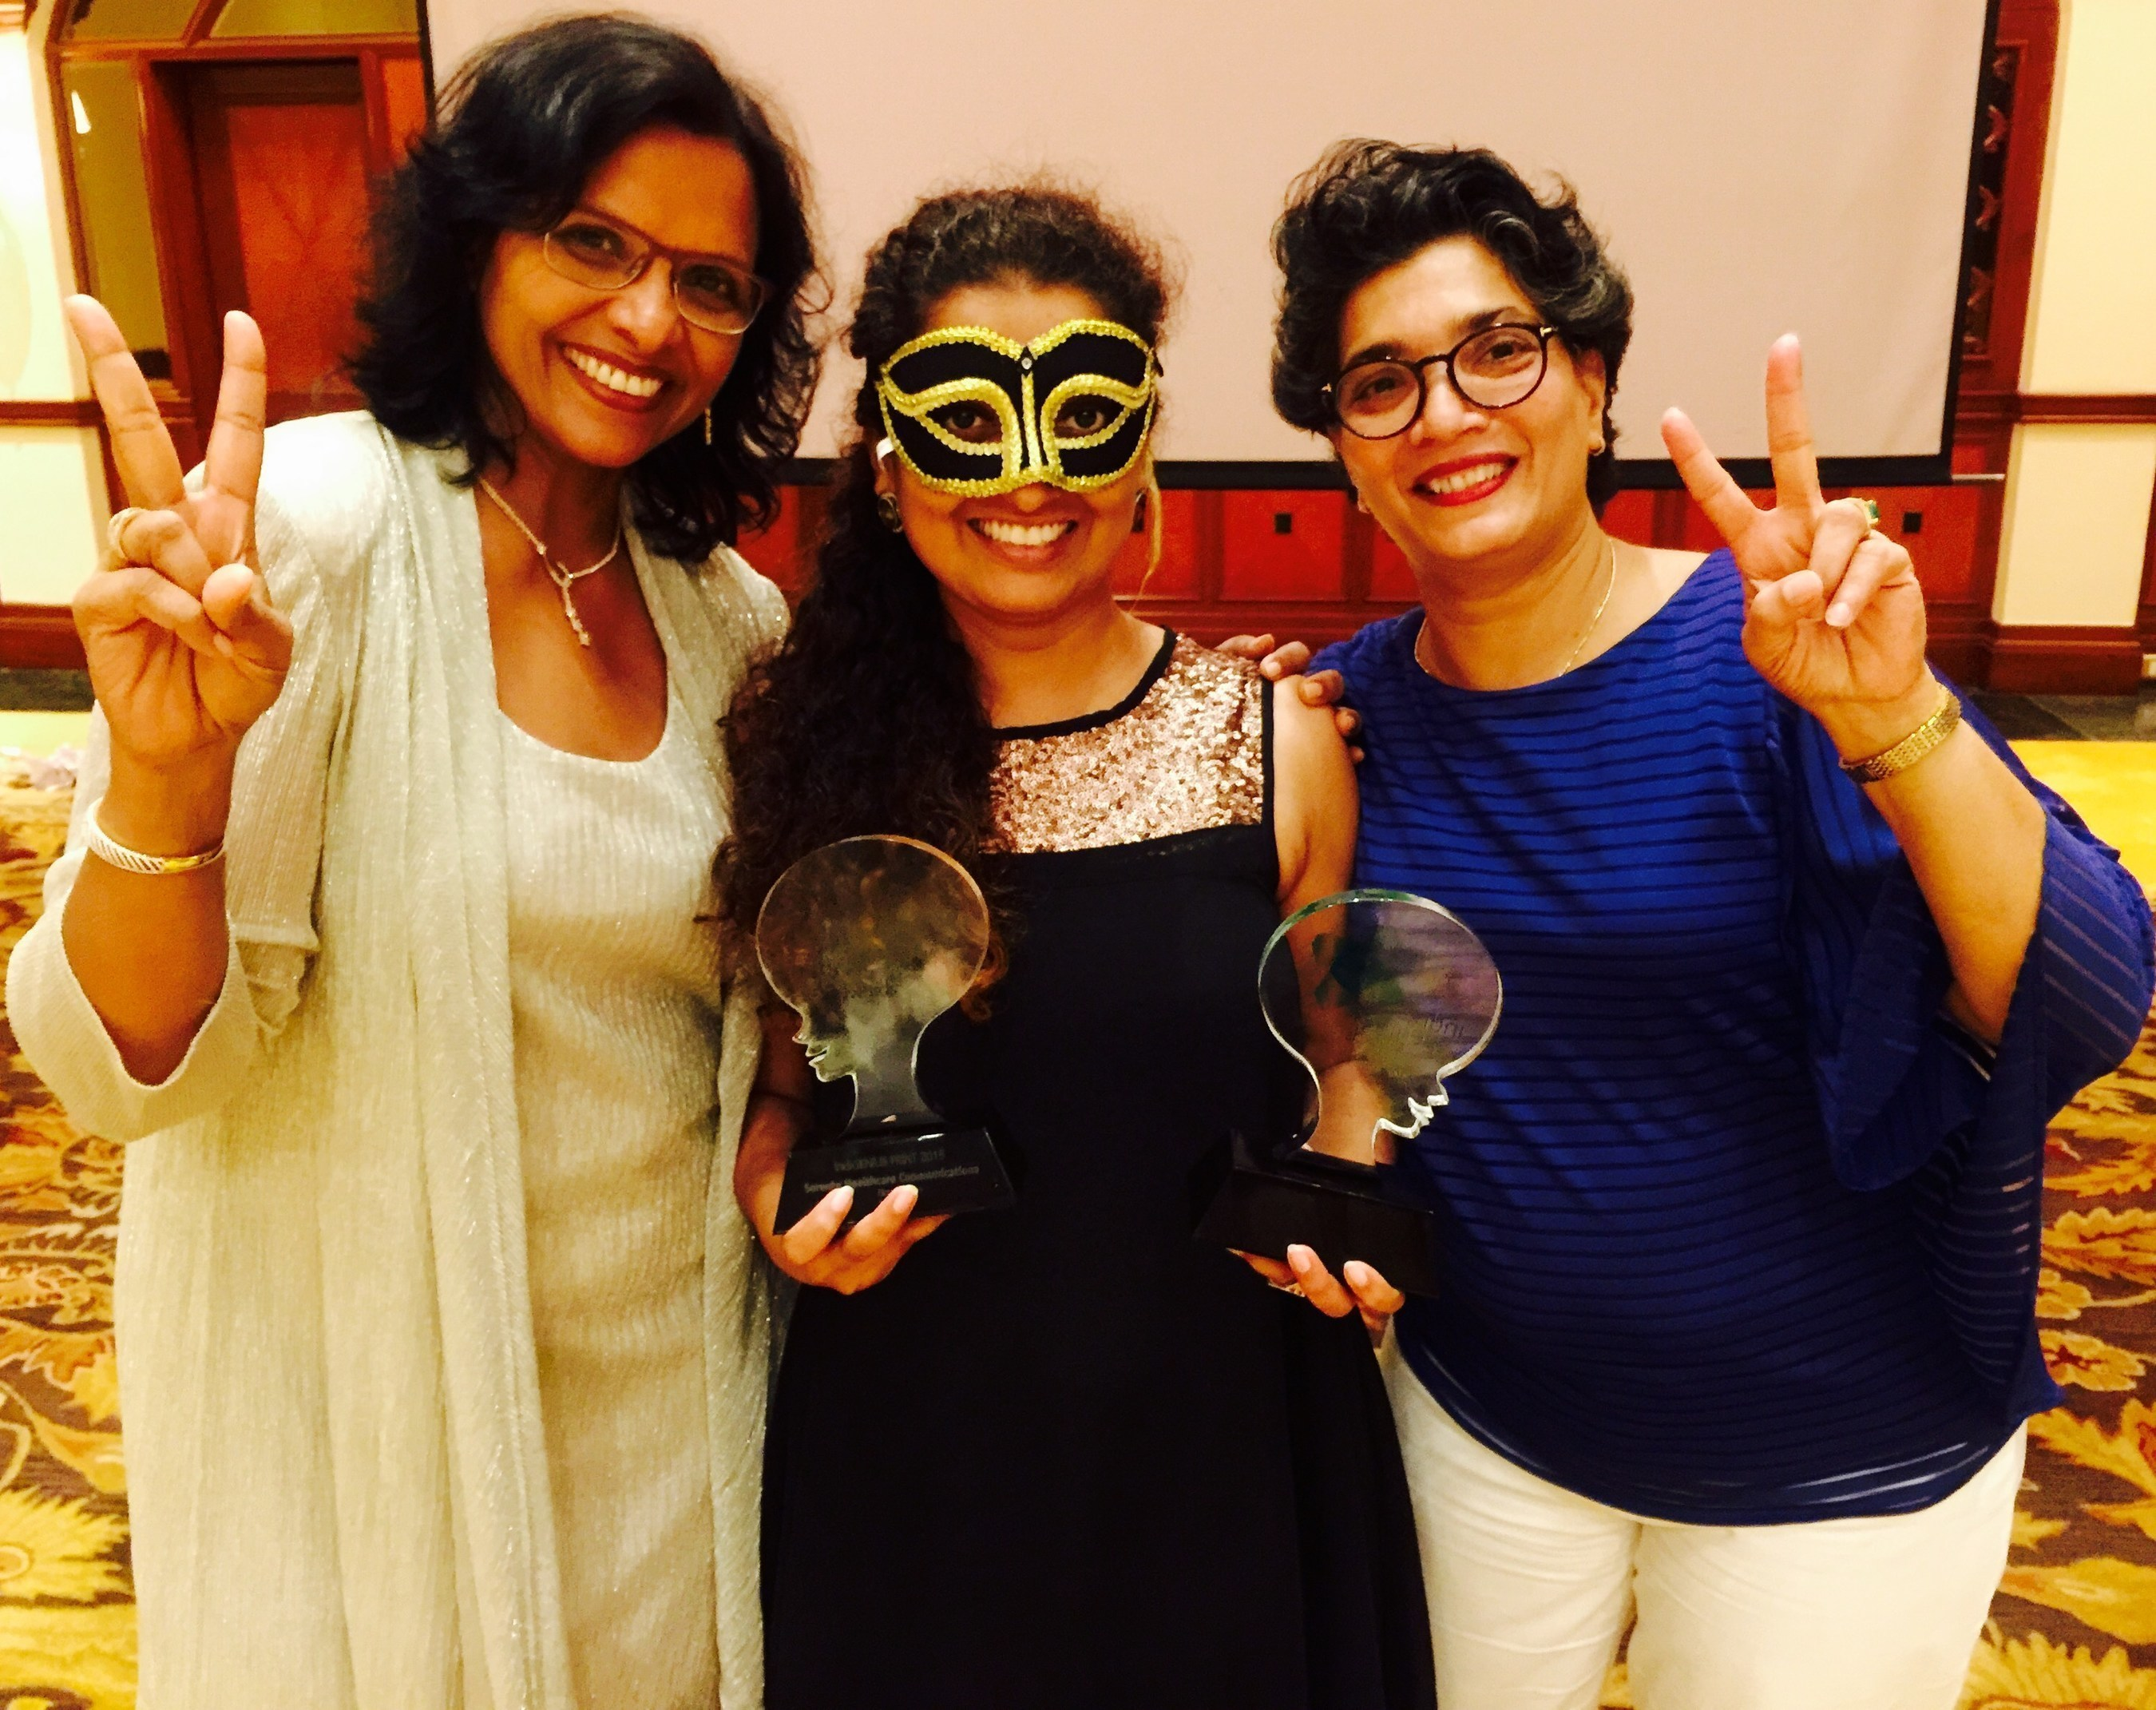 Left to Right: Susan Josi, Ruchi Shah, and Sangeeta Barde of Sorento Healthcare Communications team accept their awards during the 'Secret Society' themed ceremony in Goa, India